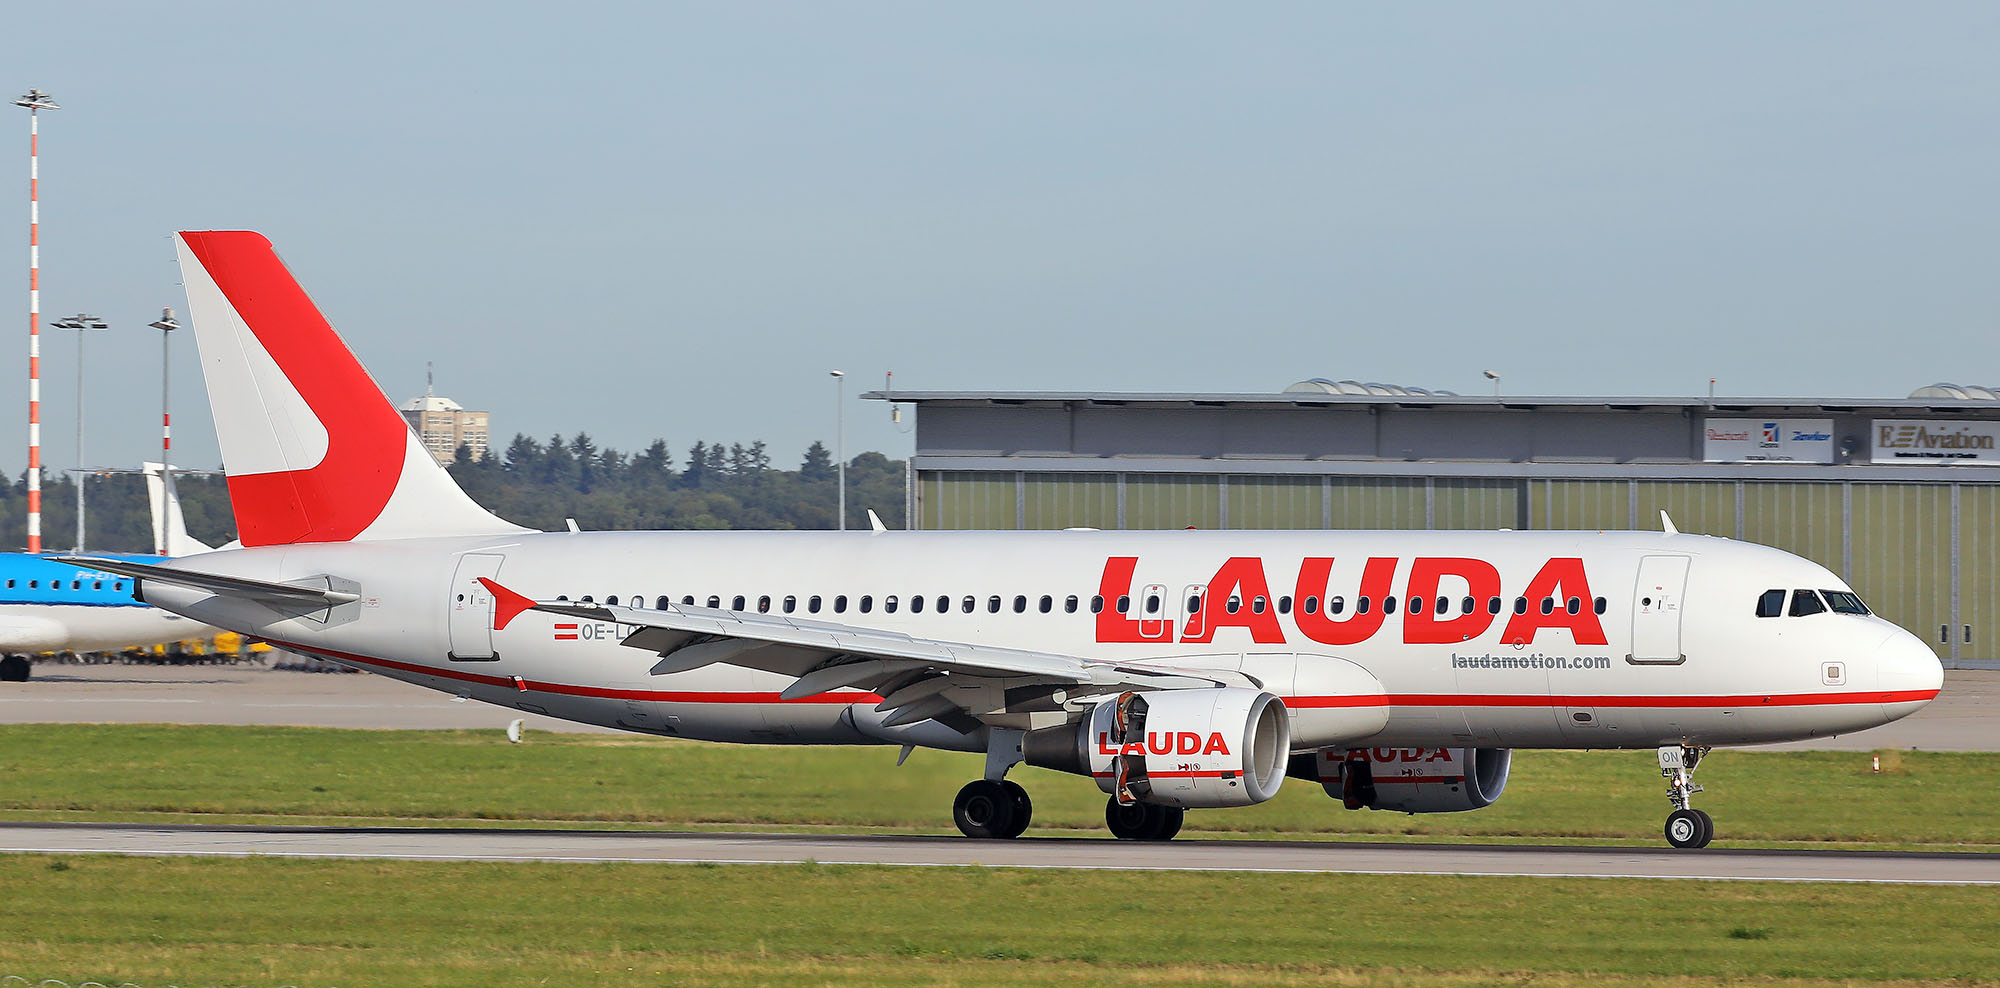 Laudamotion in Skiathos for 2020